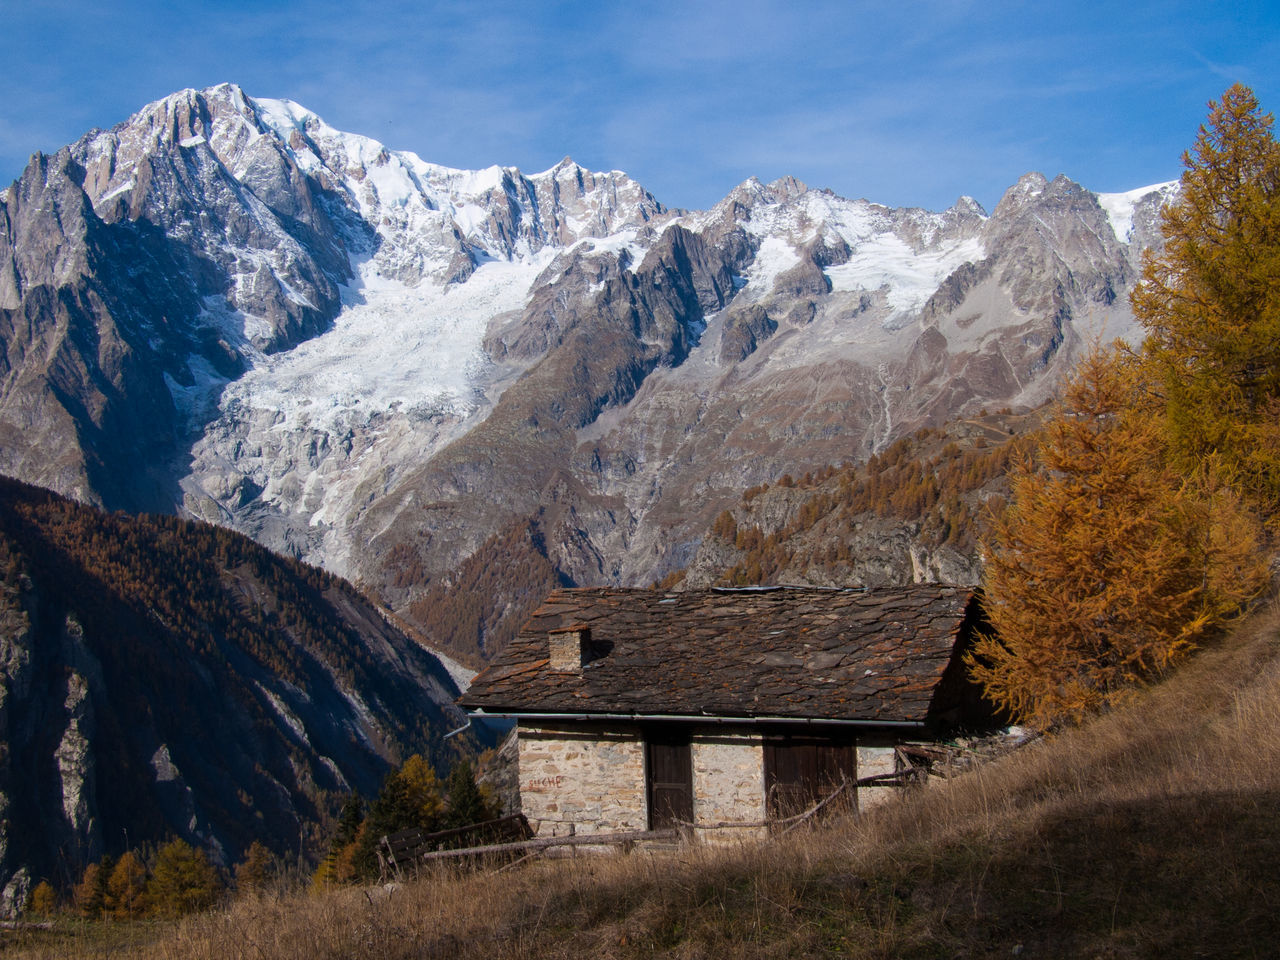 mountain, mountain range, scenics, nature, no people, day, built structure, beauty in nature, outdoors, landscape, architecture, snow, building exterior, sky, tree